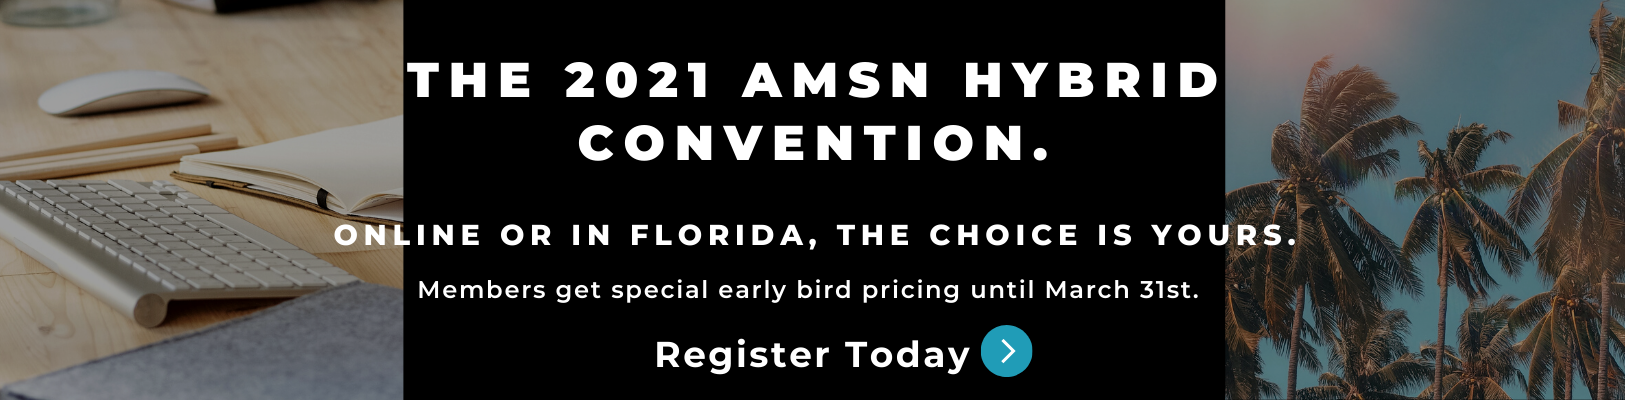 Convention 2021 Header for AMSN